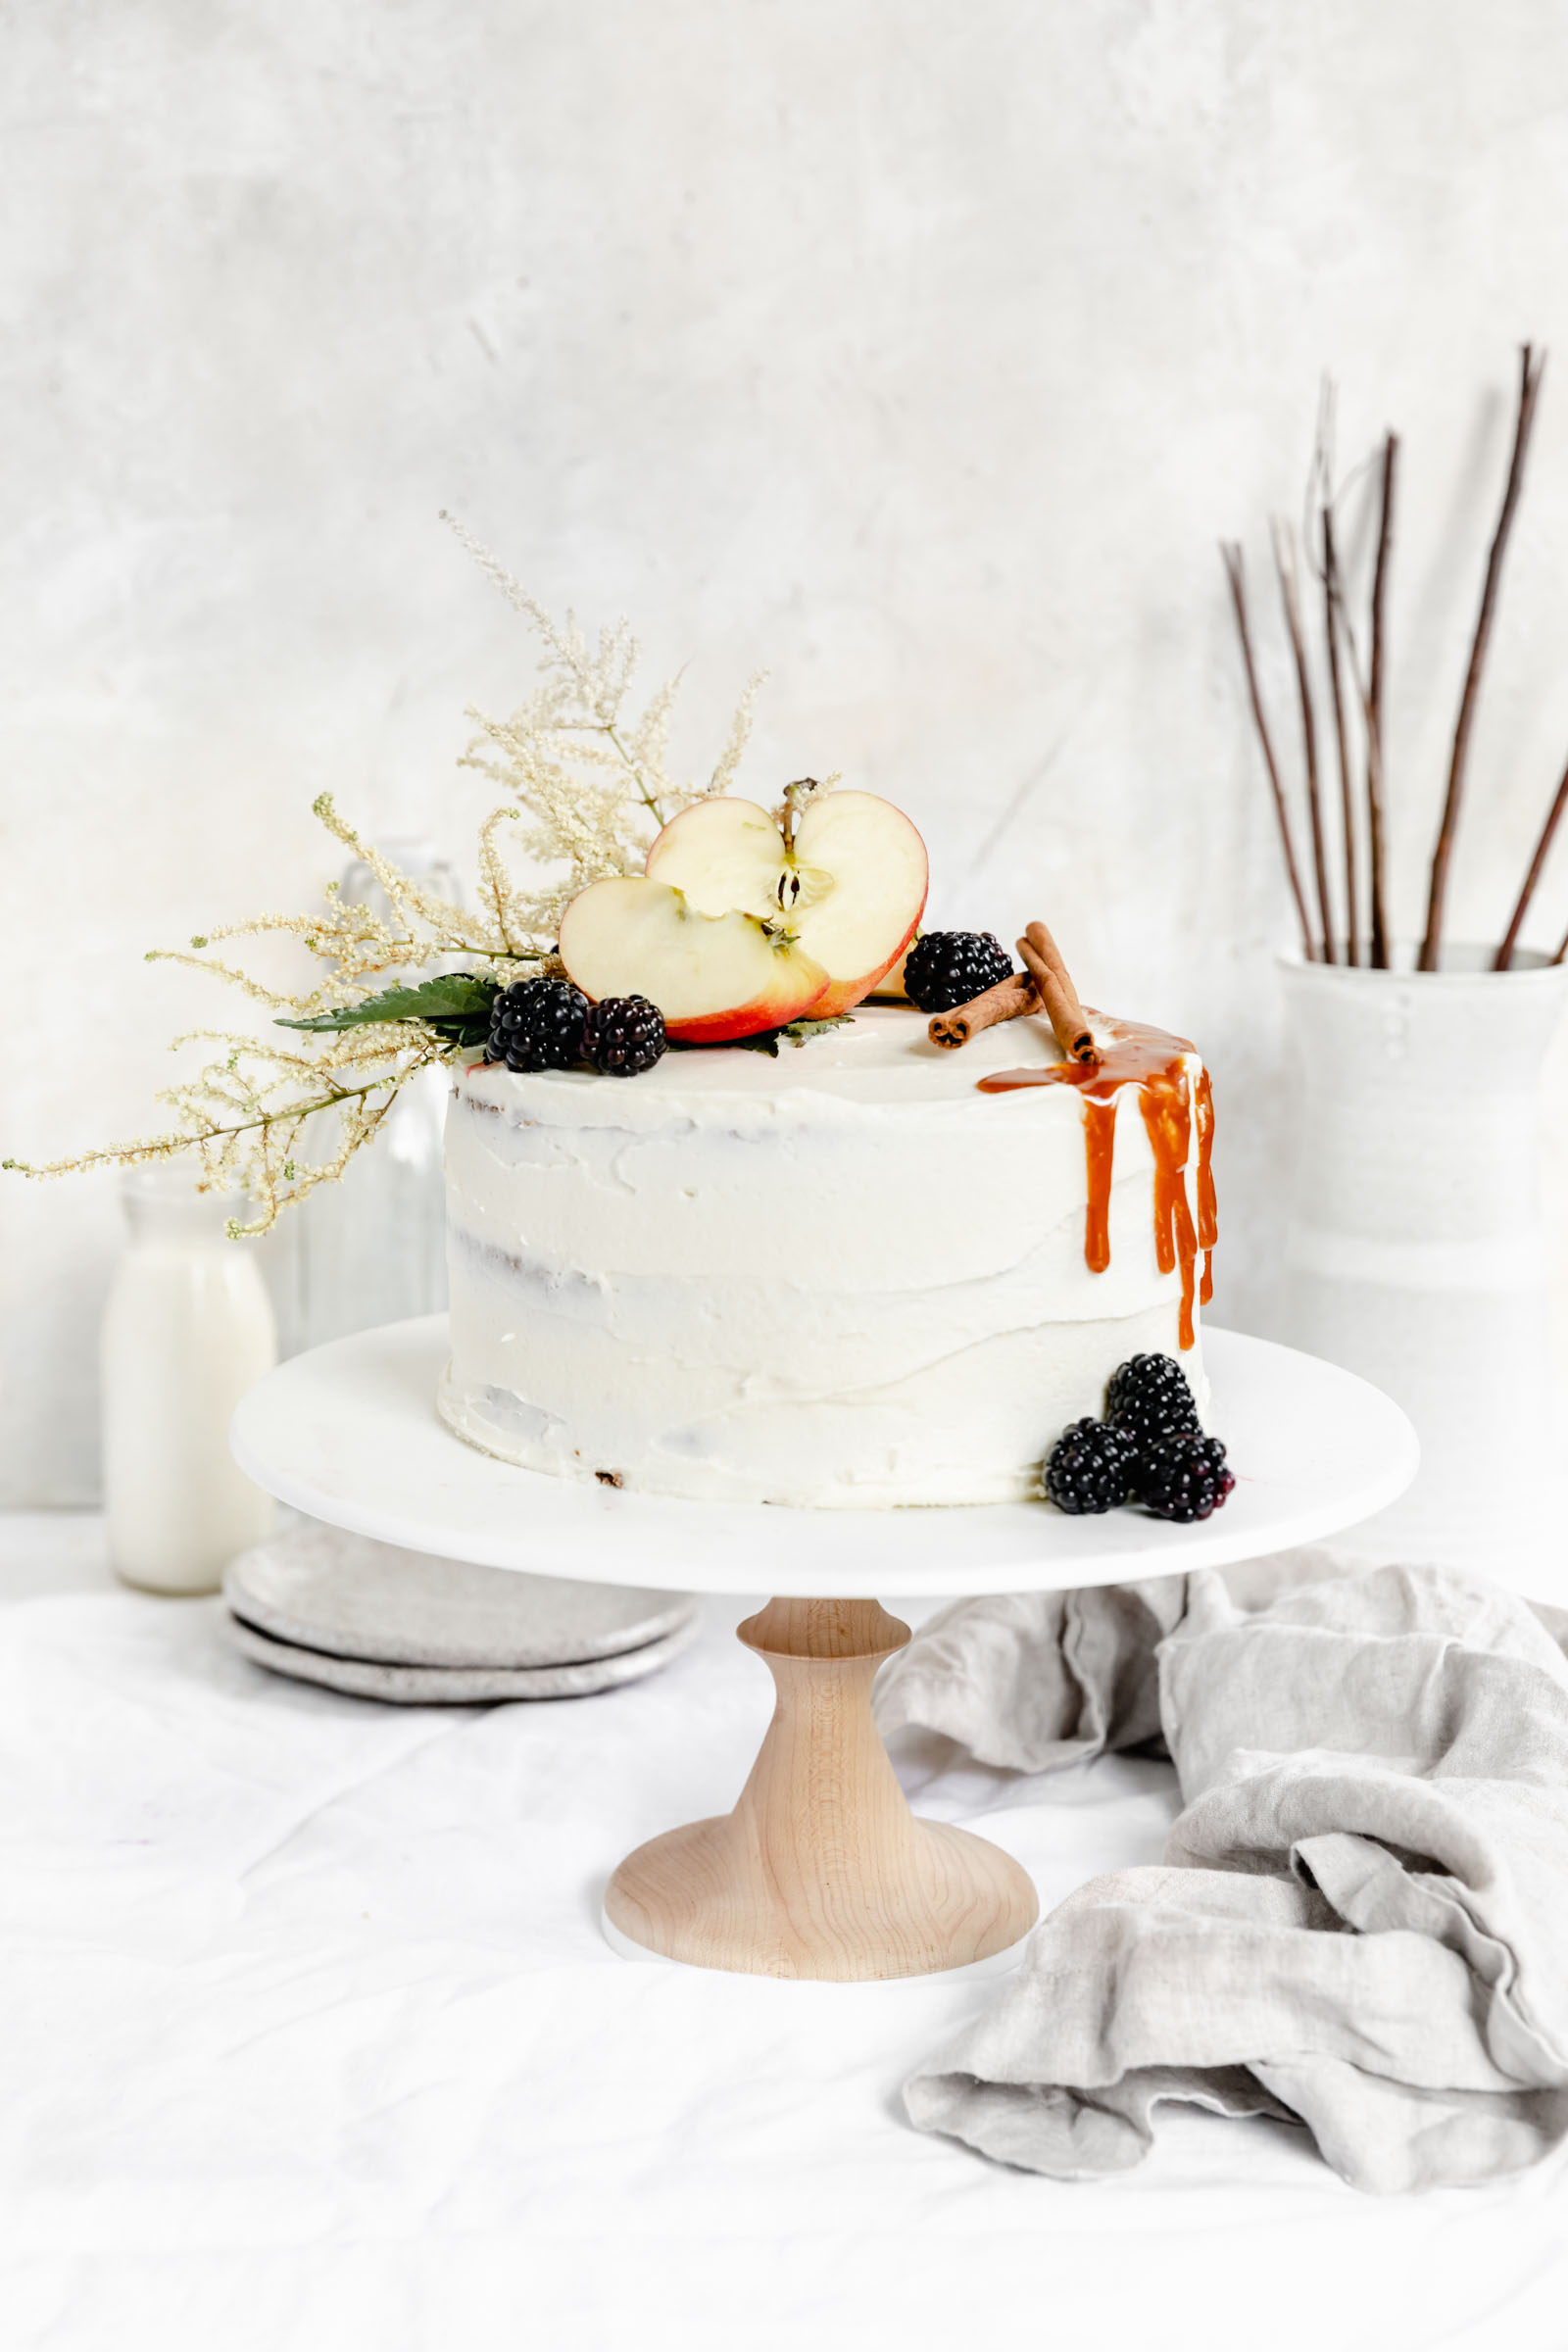 apple cake on cake stand topped with apples, berries and fall flowers